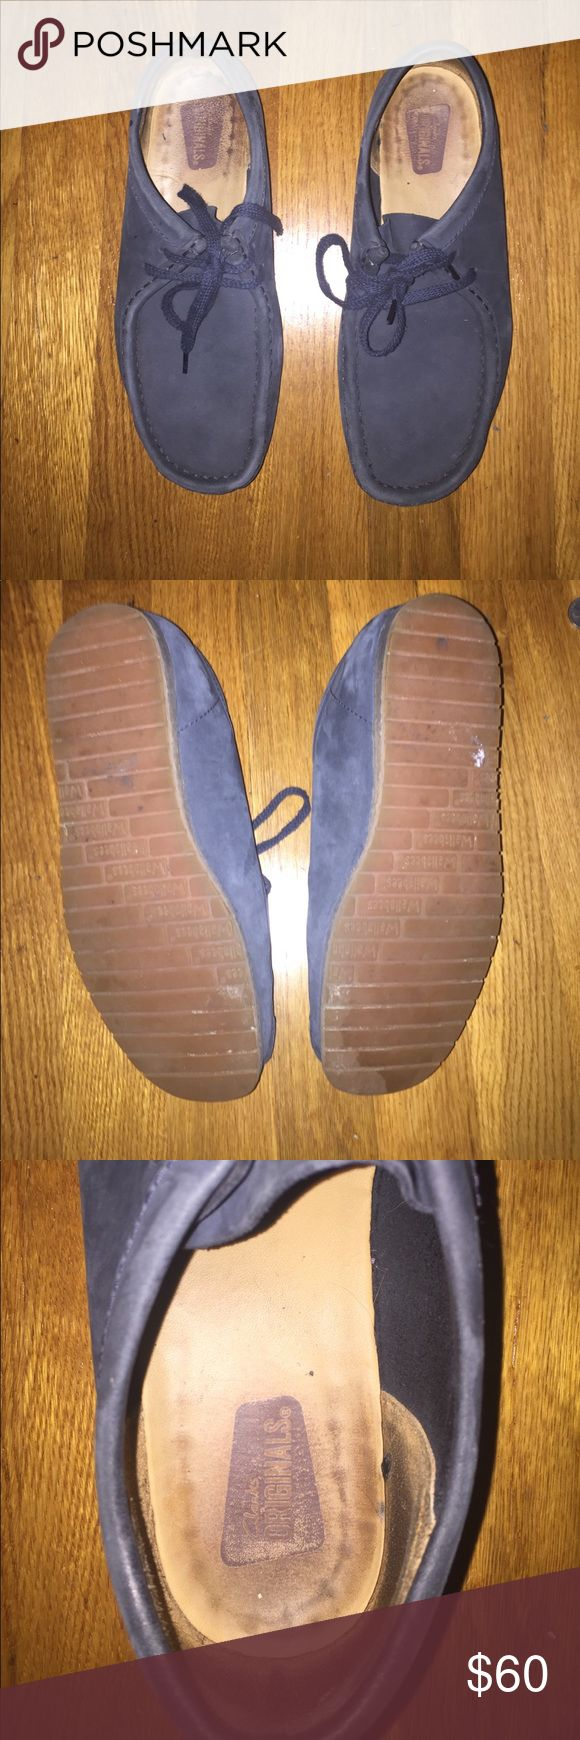 Clarks original wallabee step with sneaker bottoms Worn for 2 months while worked at clarks, rarely worn outside. Size 7 mens Clarks Shoes